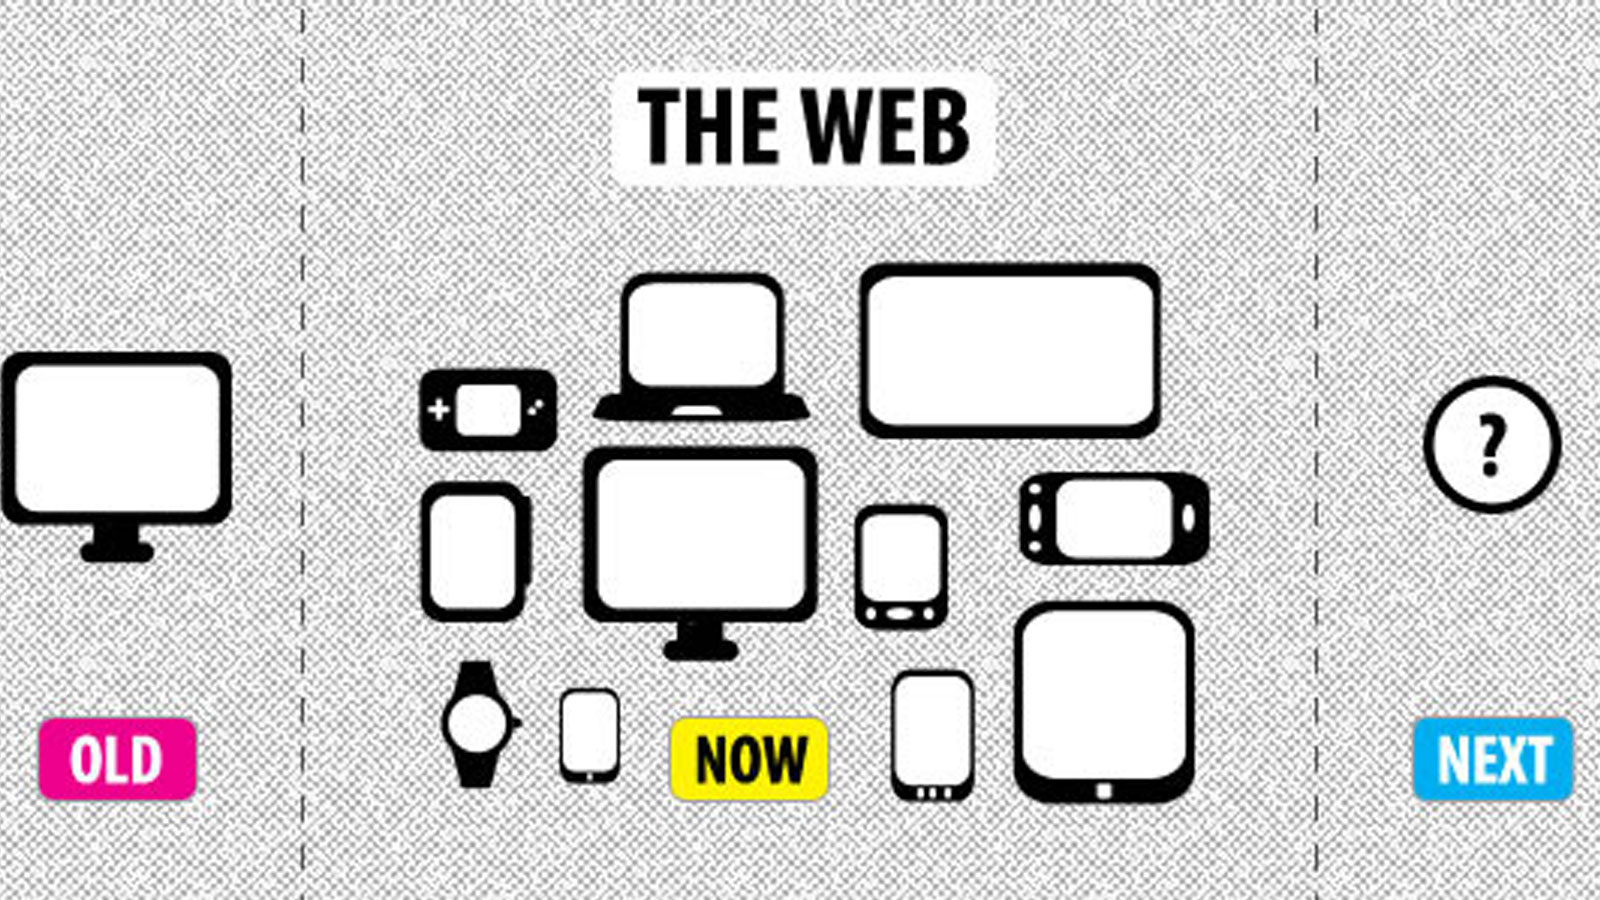 Web Design Predictions For 2014